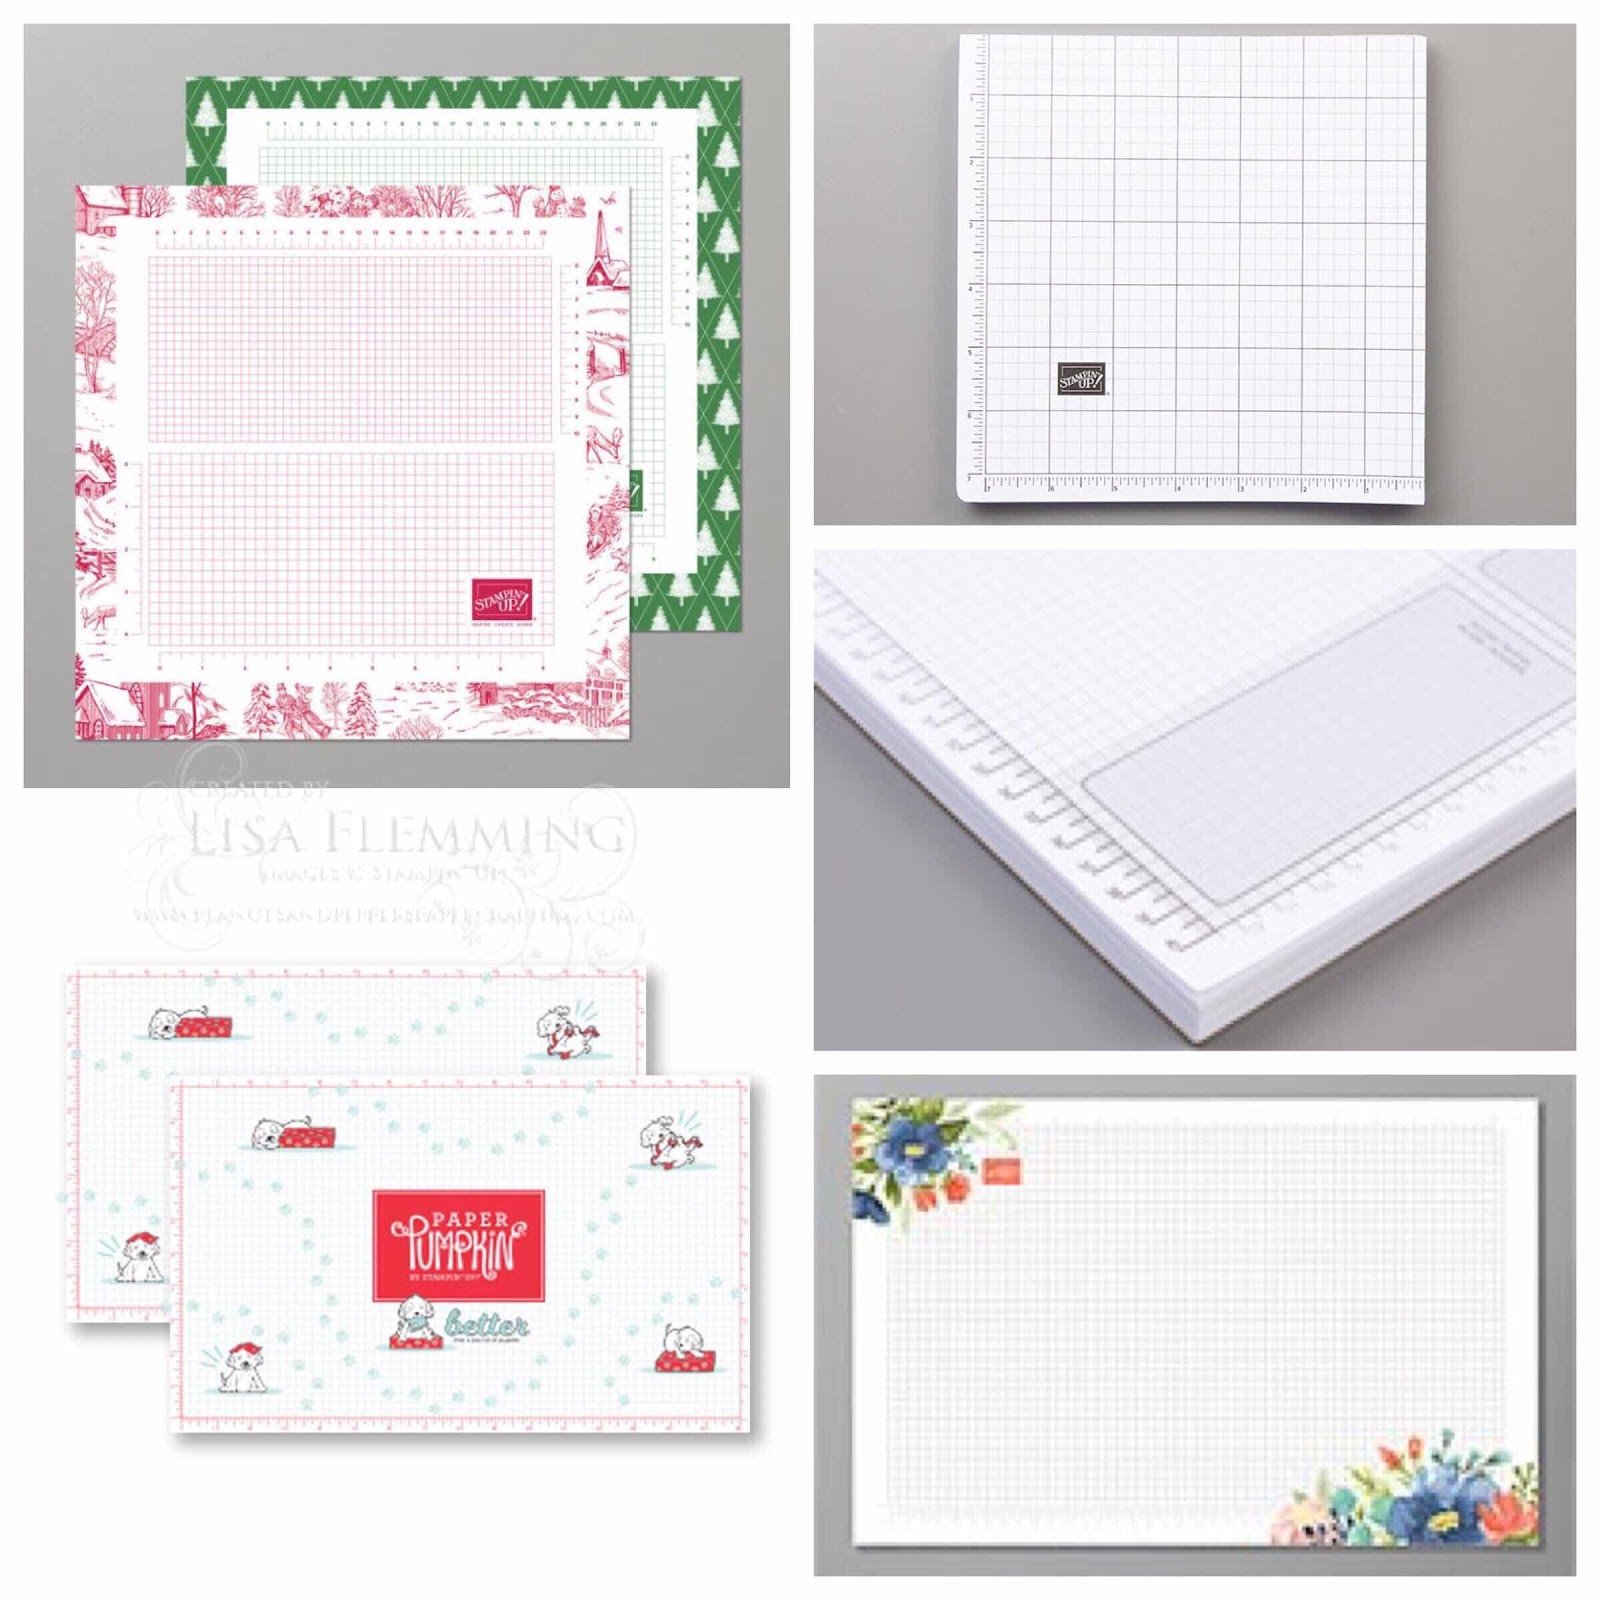 Stampin' Up! Grid Paper